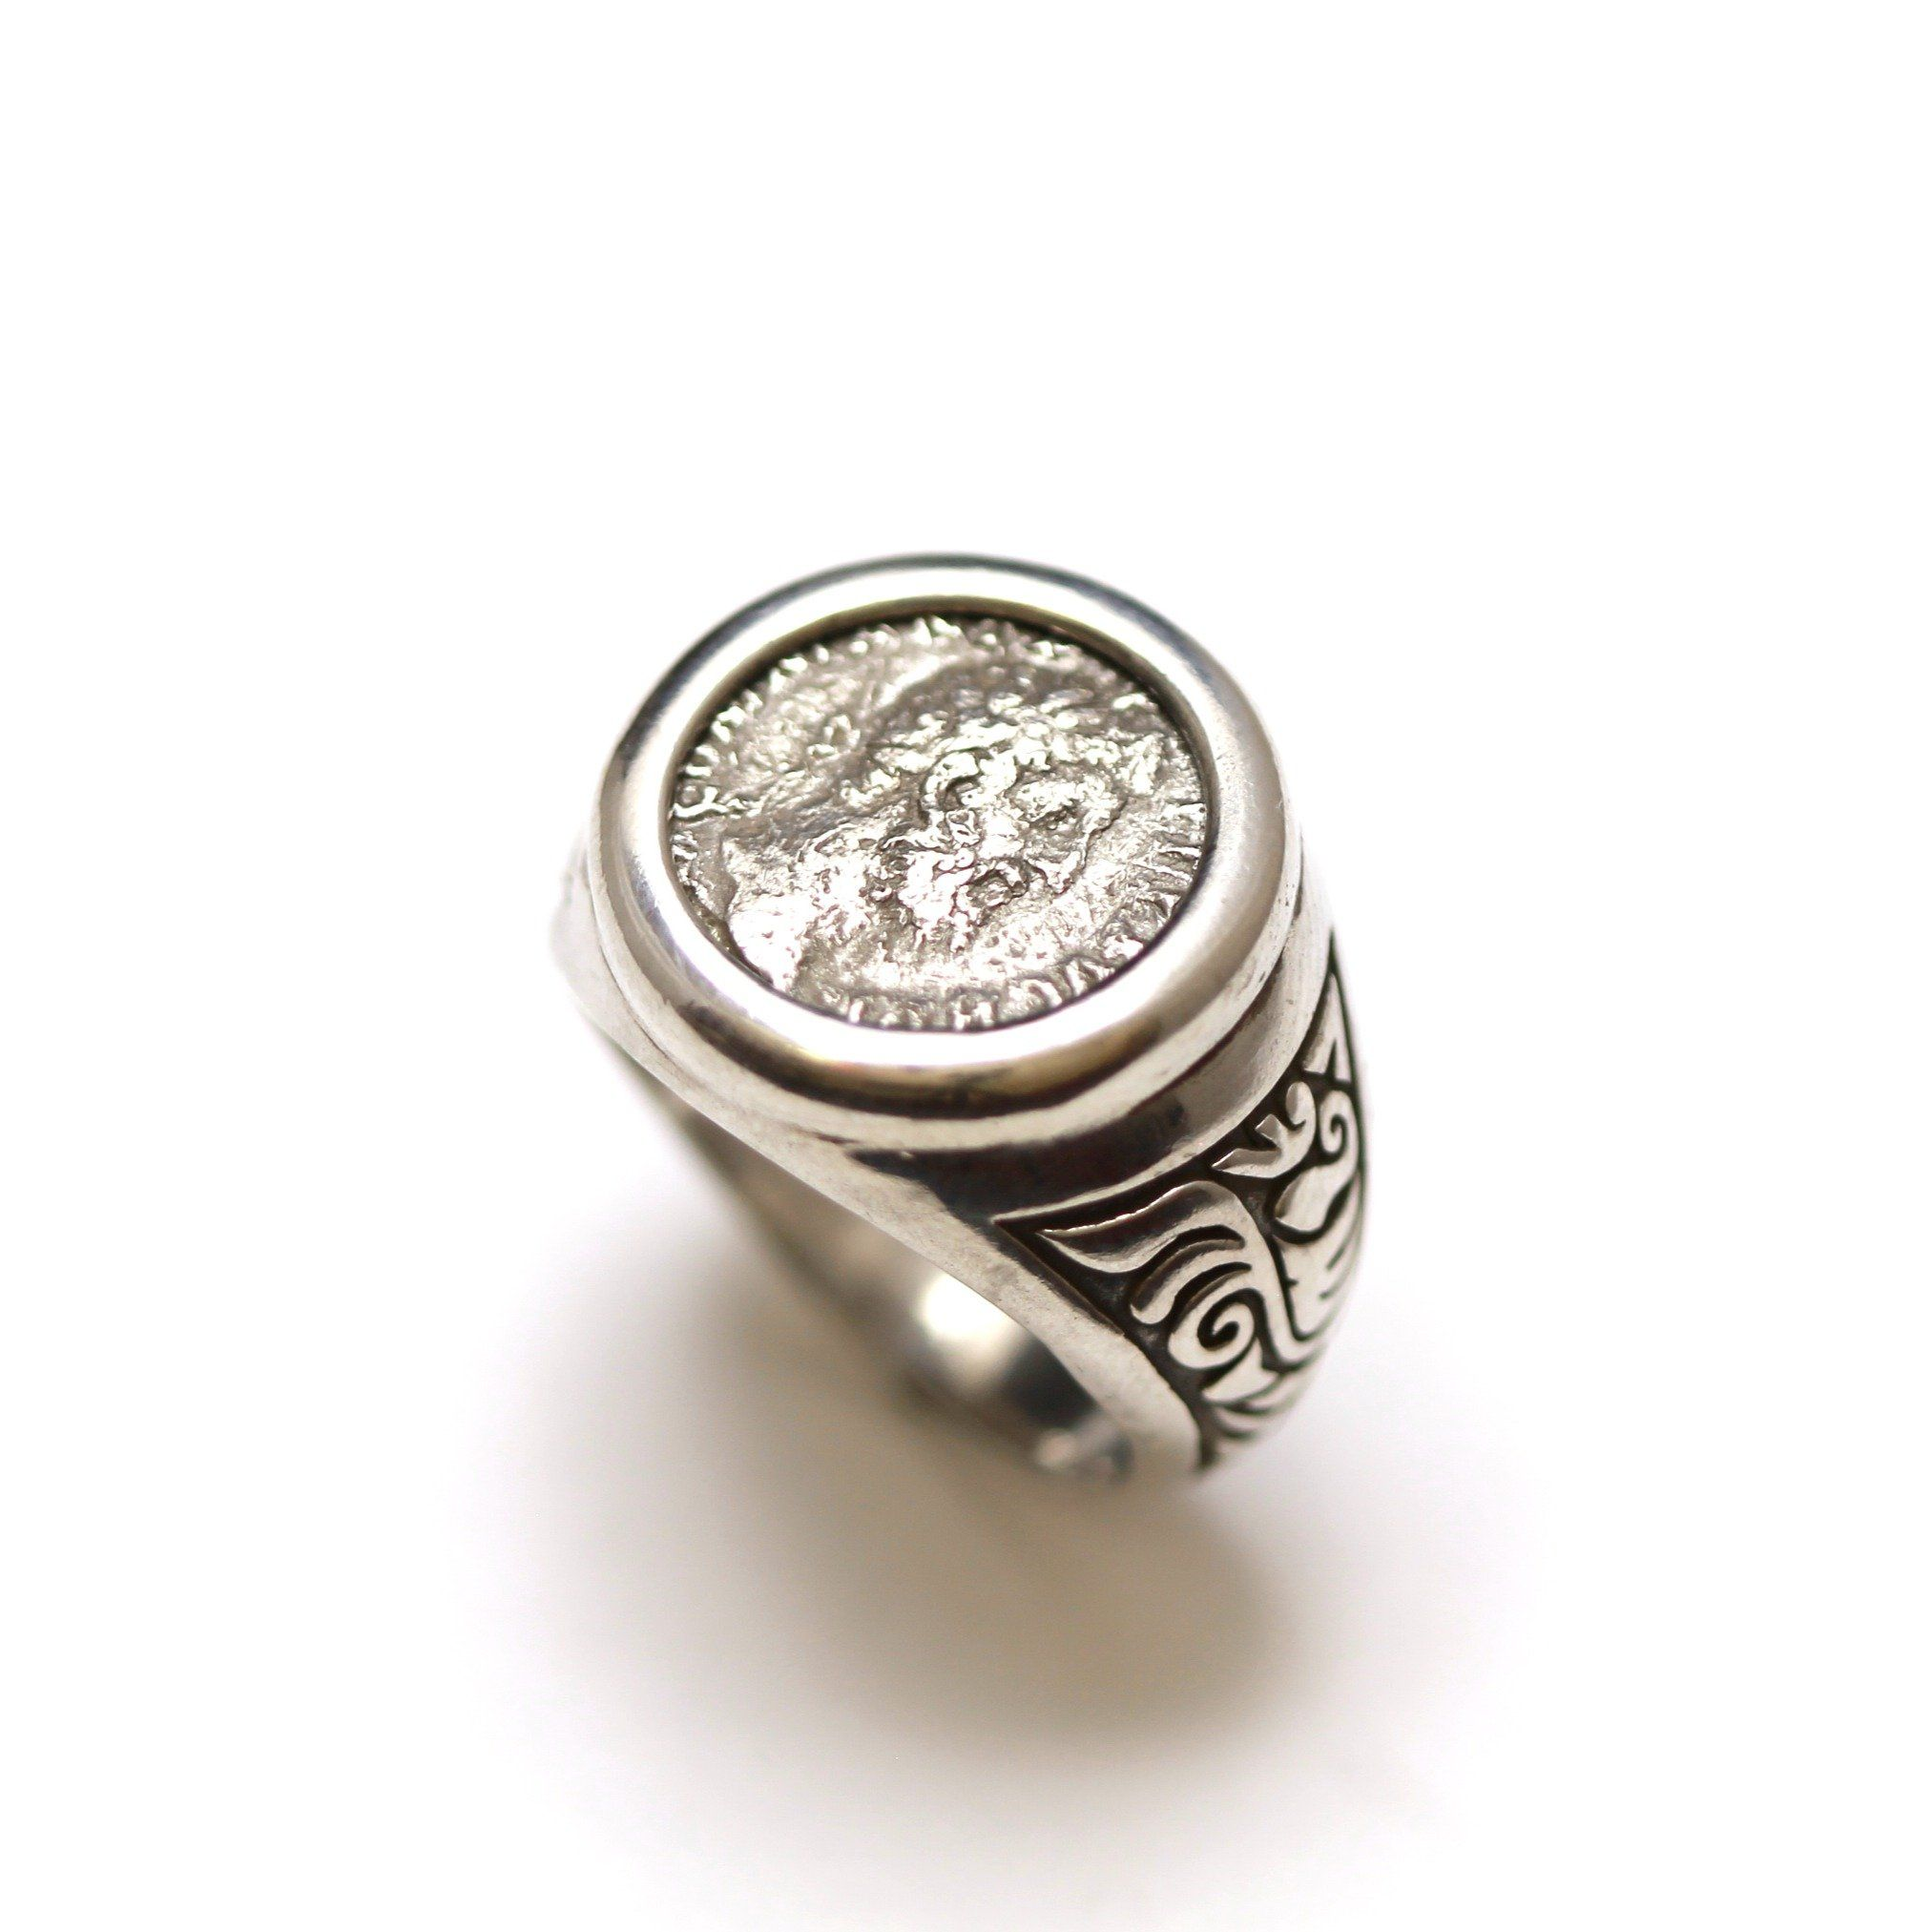 Sterling Silver Engraved Ring, Commodus, Ancient Roman Denarius Coin, ID13360 - Erez Ancient Coin Jewelry, ancient coin jewelry, men jewelry, genuine ancient coins, made in the US